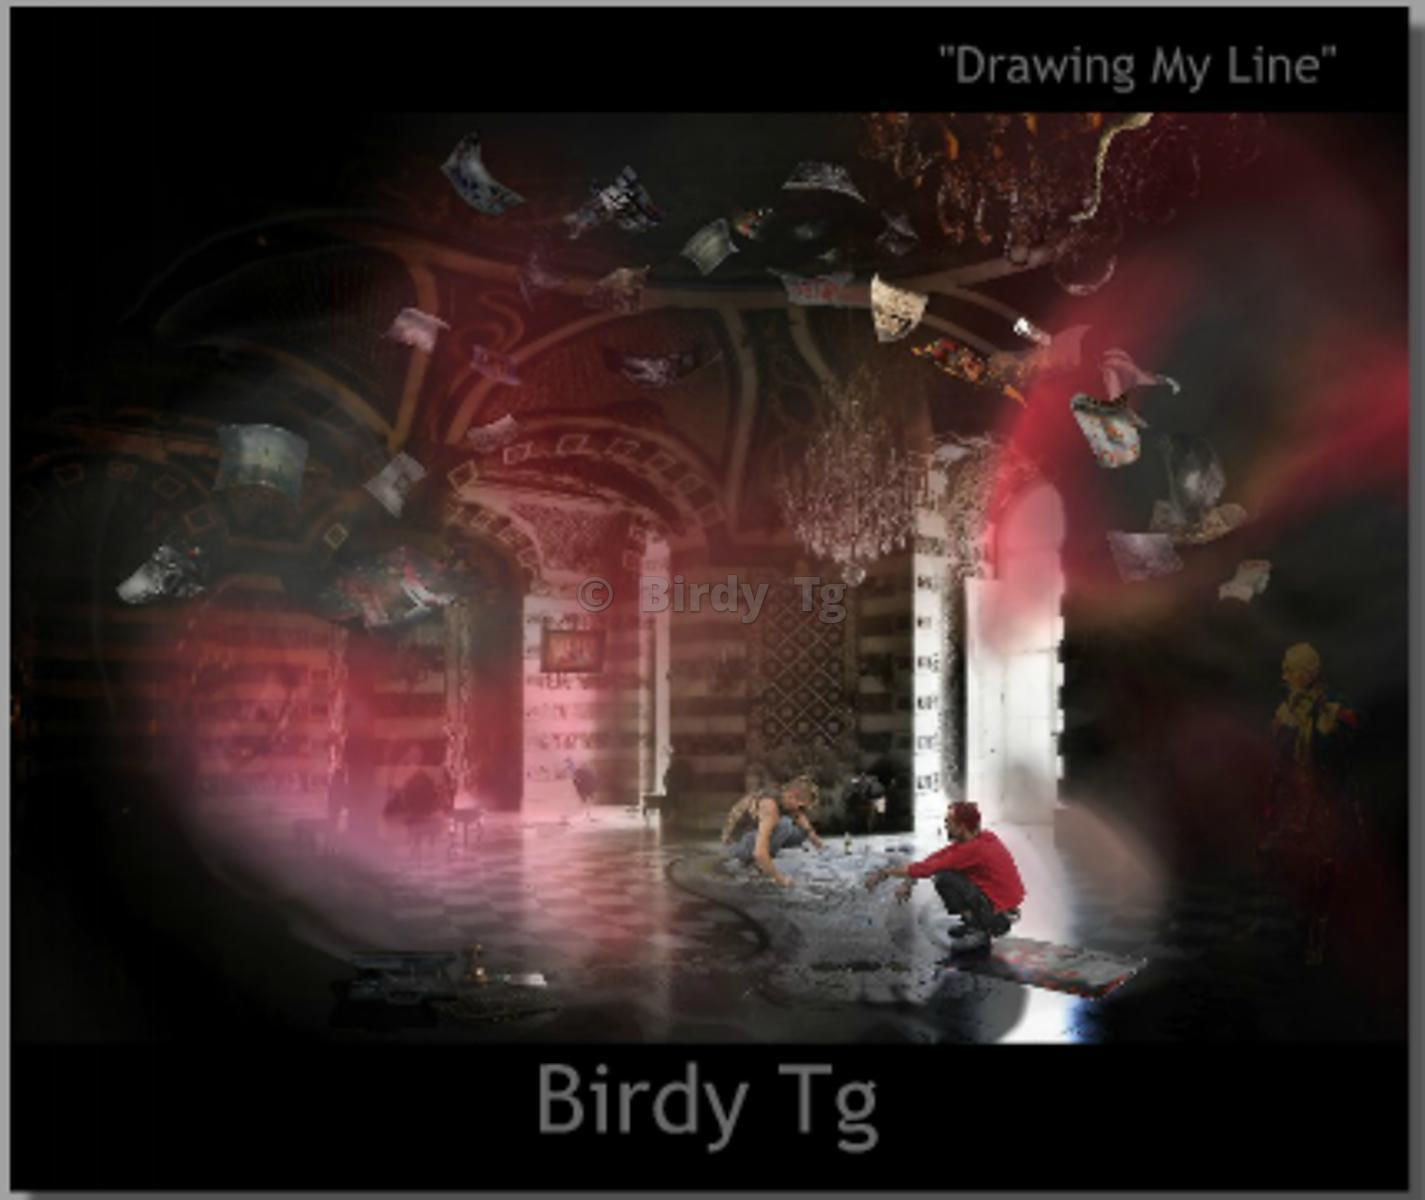 """Drawing My Line"": THE BOOK by Birdy Tg"